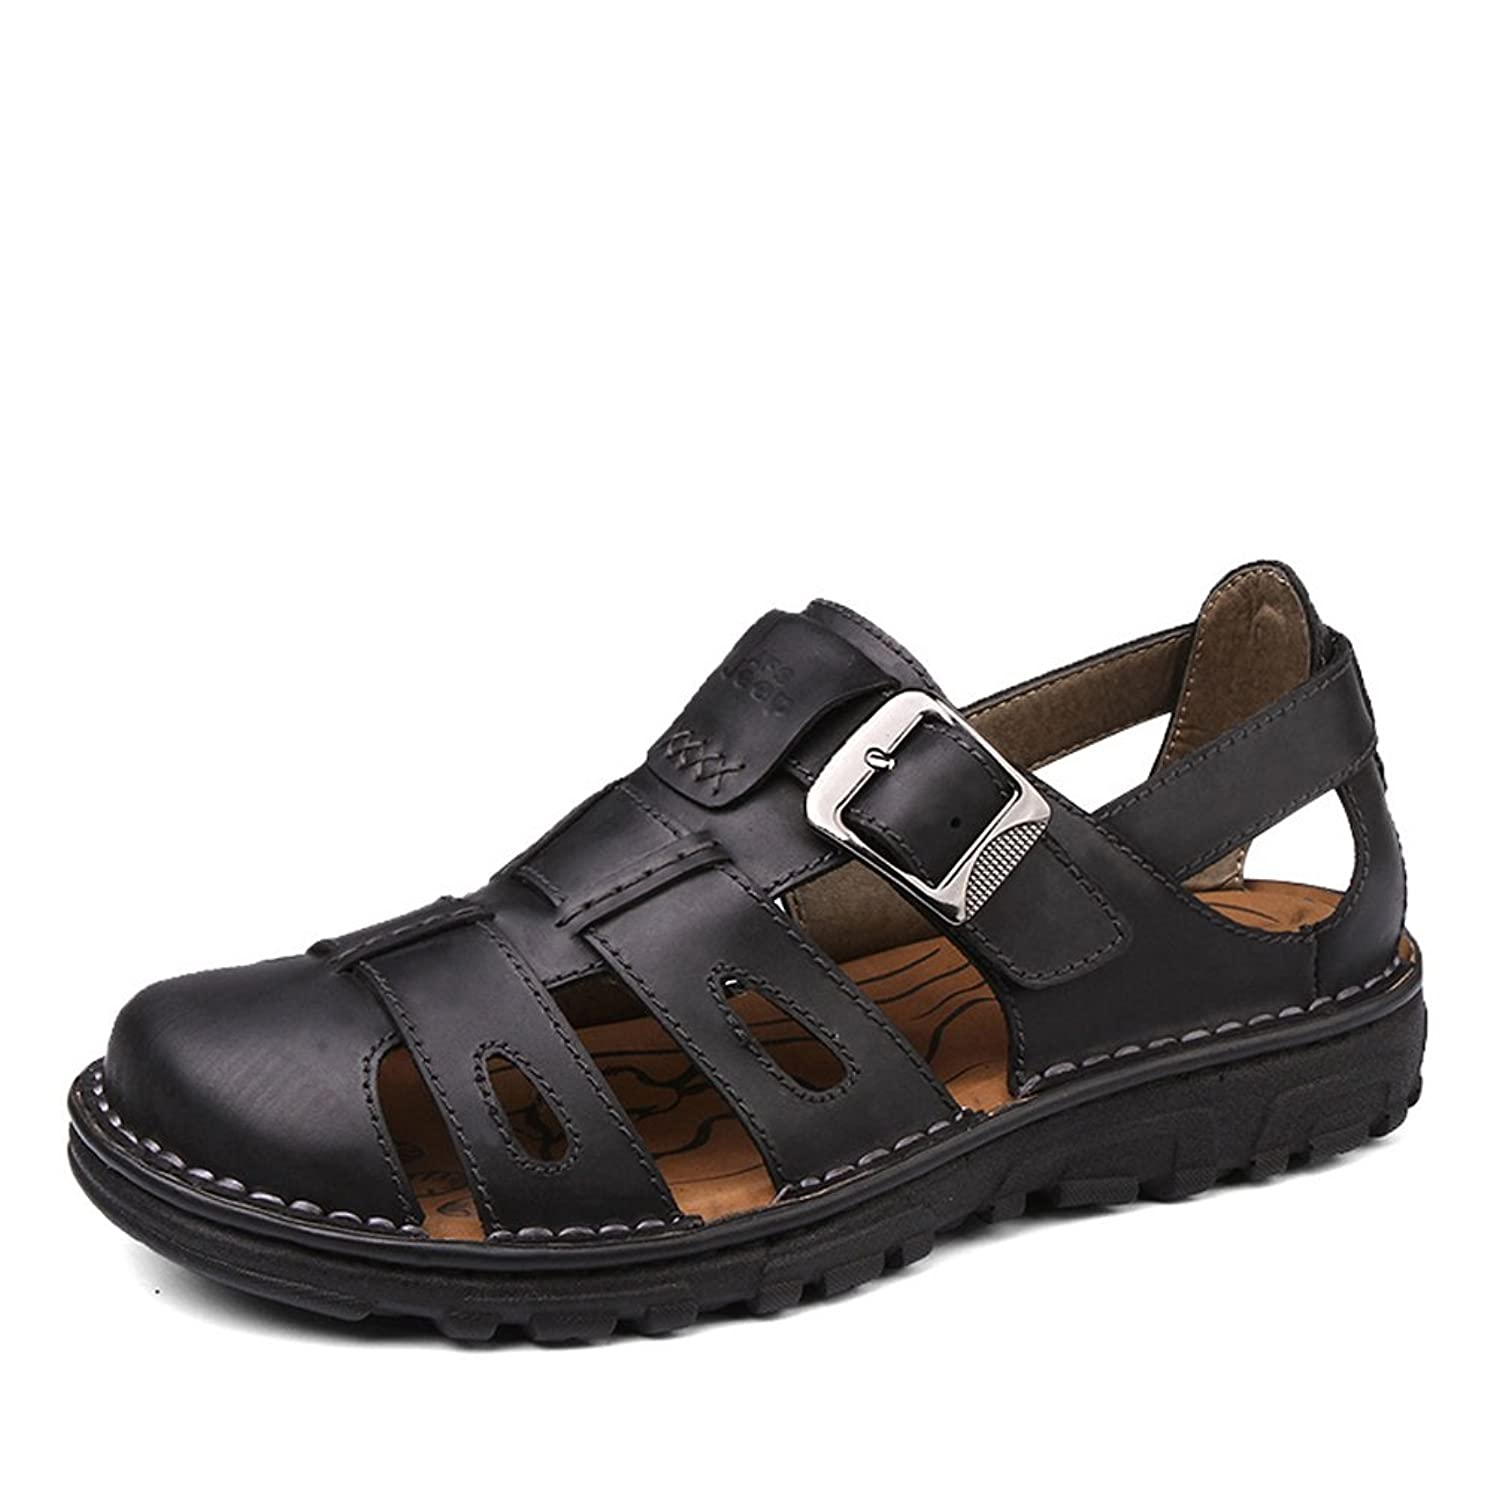 AFS JEEP Men's Outdoor Woven Pattern Close Toe Cowhide Sandals